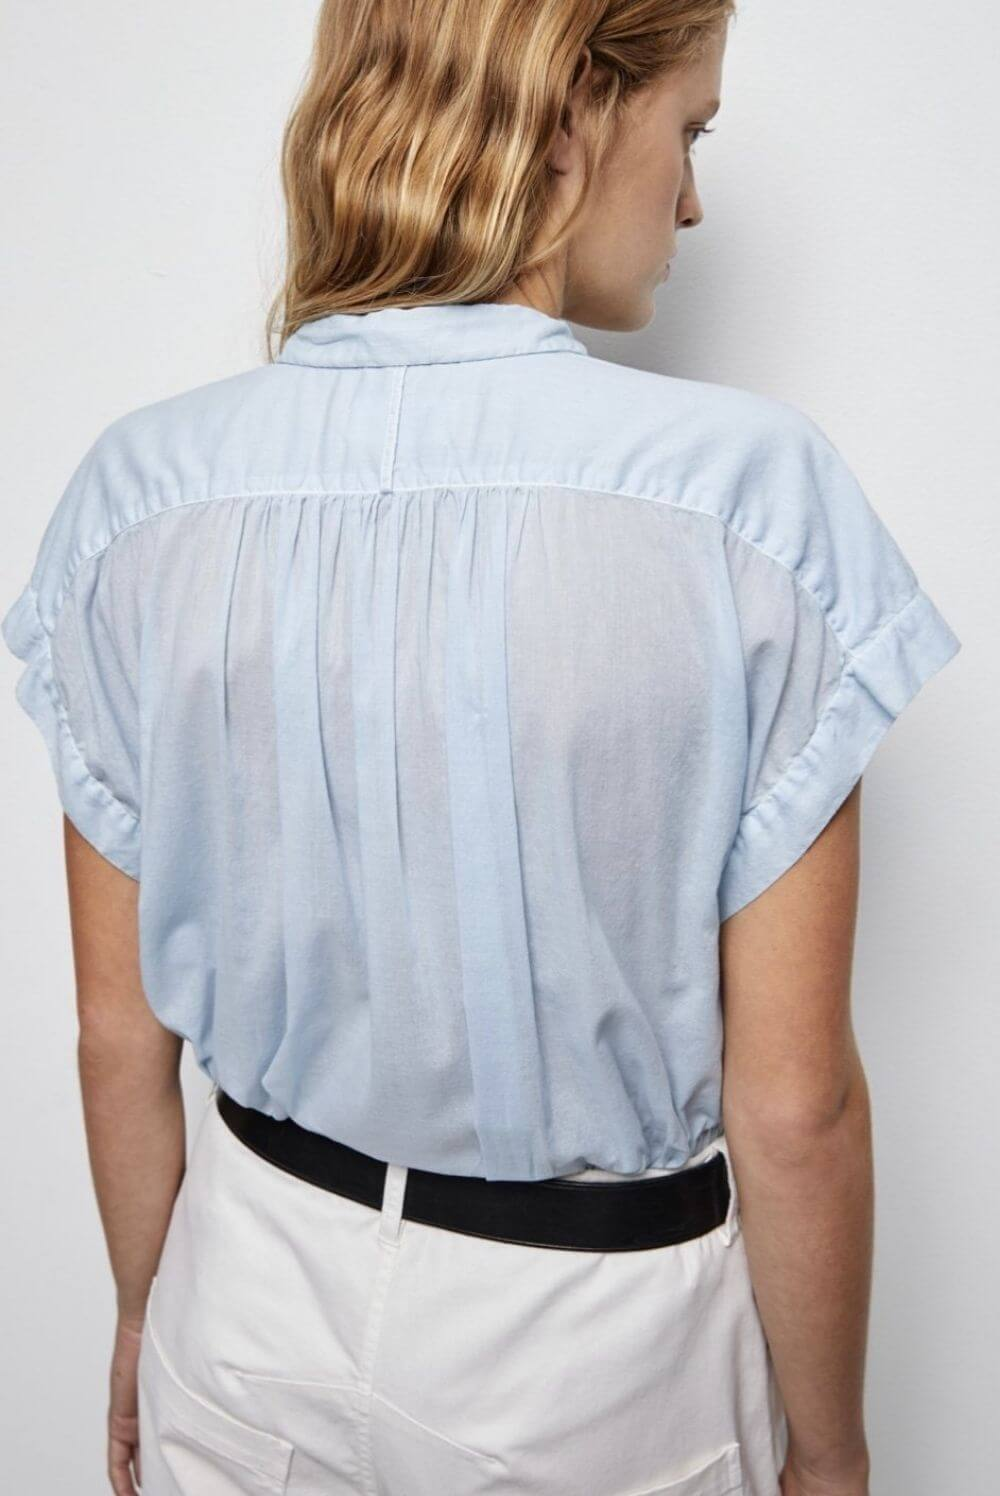 normandy blouse nili lotan